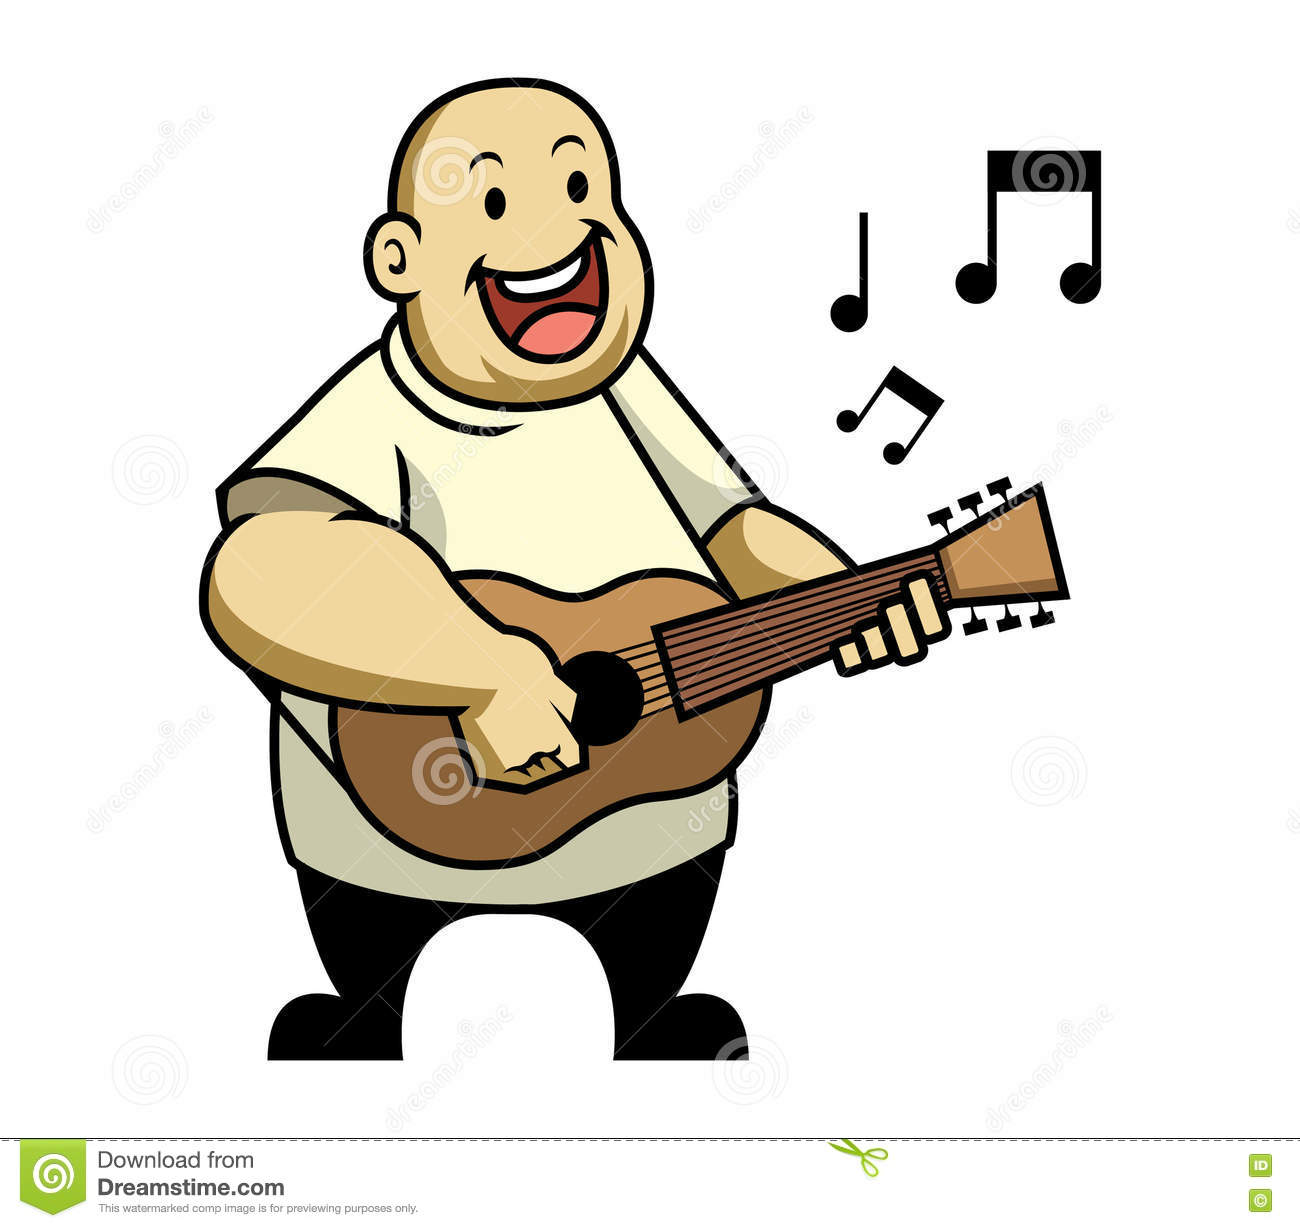 Singing Fat Kid Stock Vector - Image: 73252854